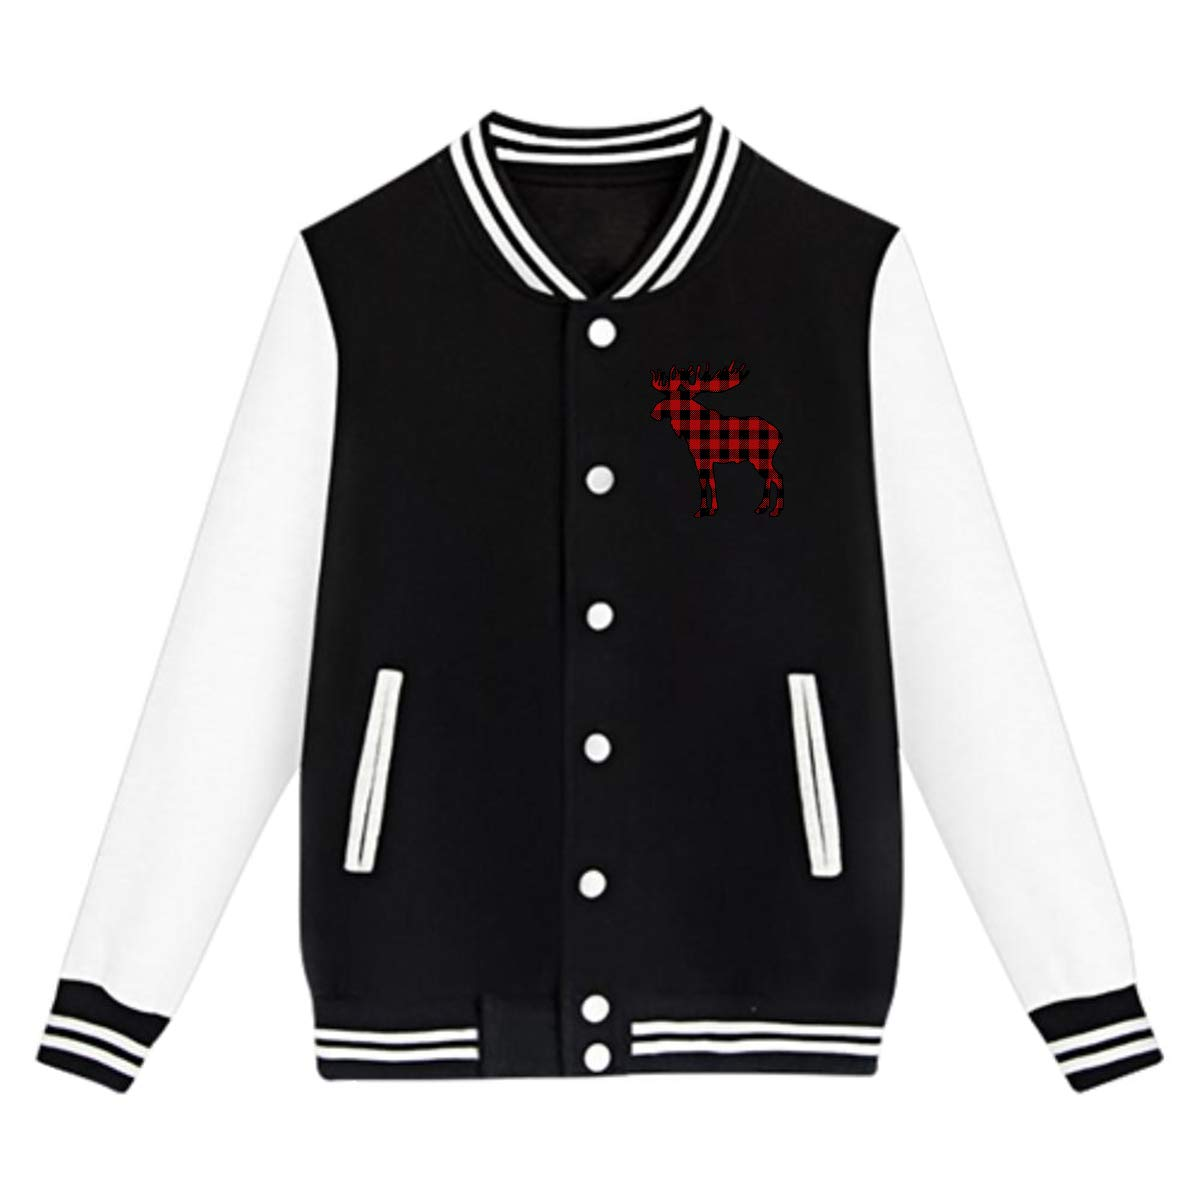 Buffalo Plaid Moose Teenage Baseball Jackets Uniform Boys Varsity Jackets